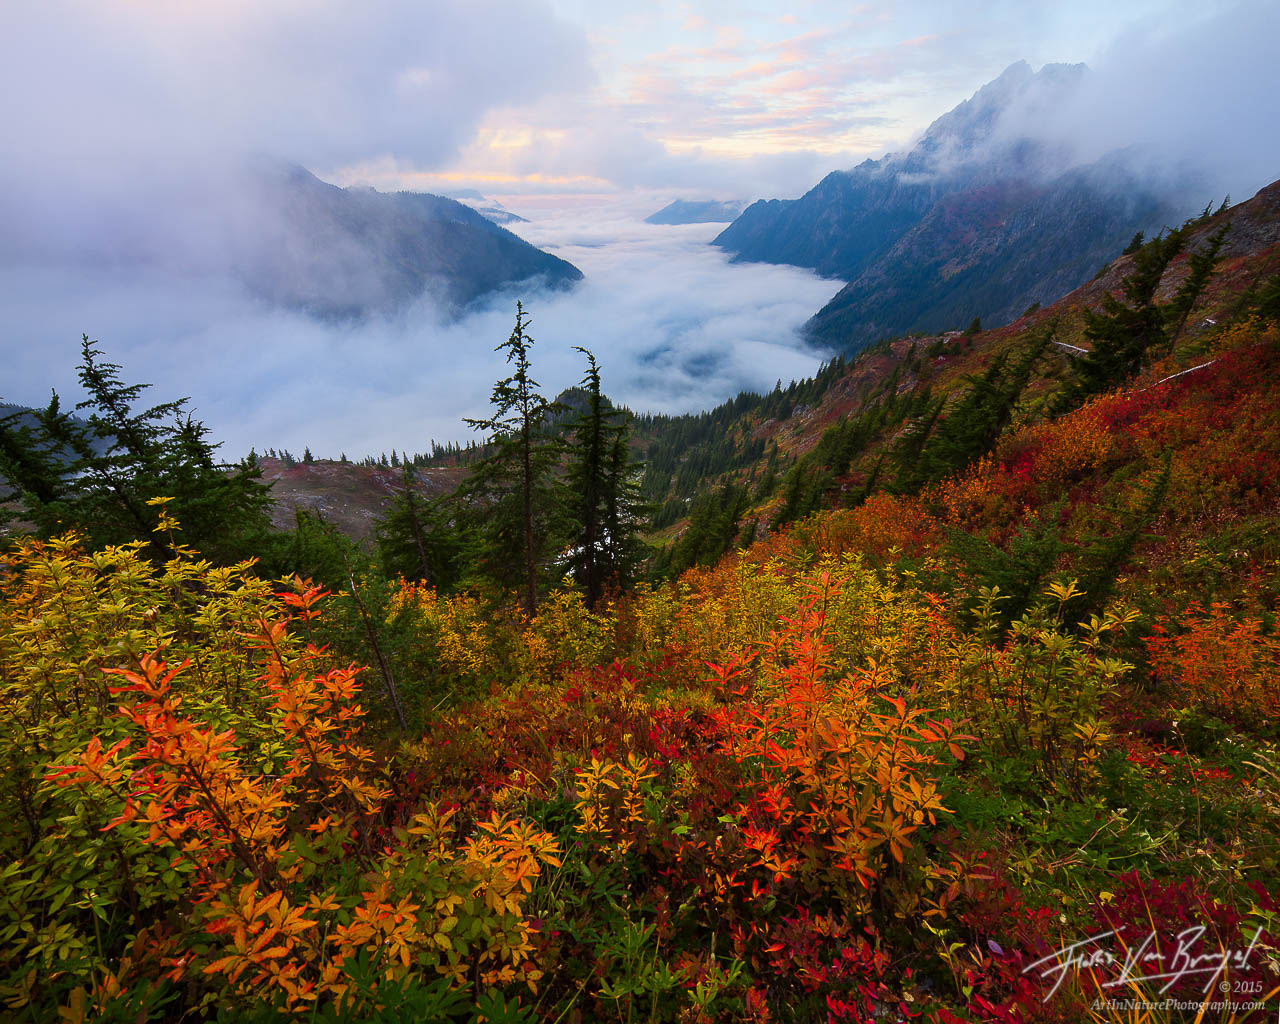 North Cascades Autumn Foliage, Mist Valley, Washington, photo